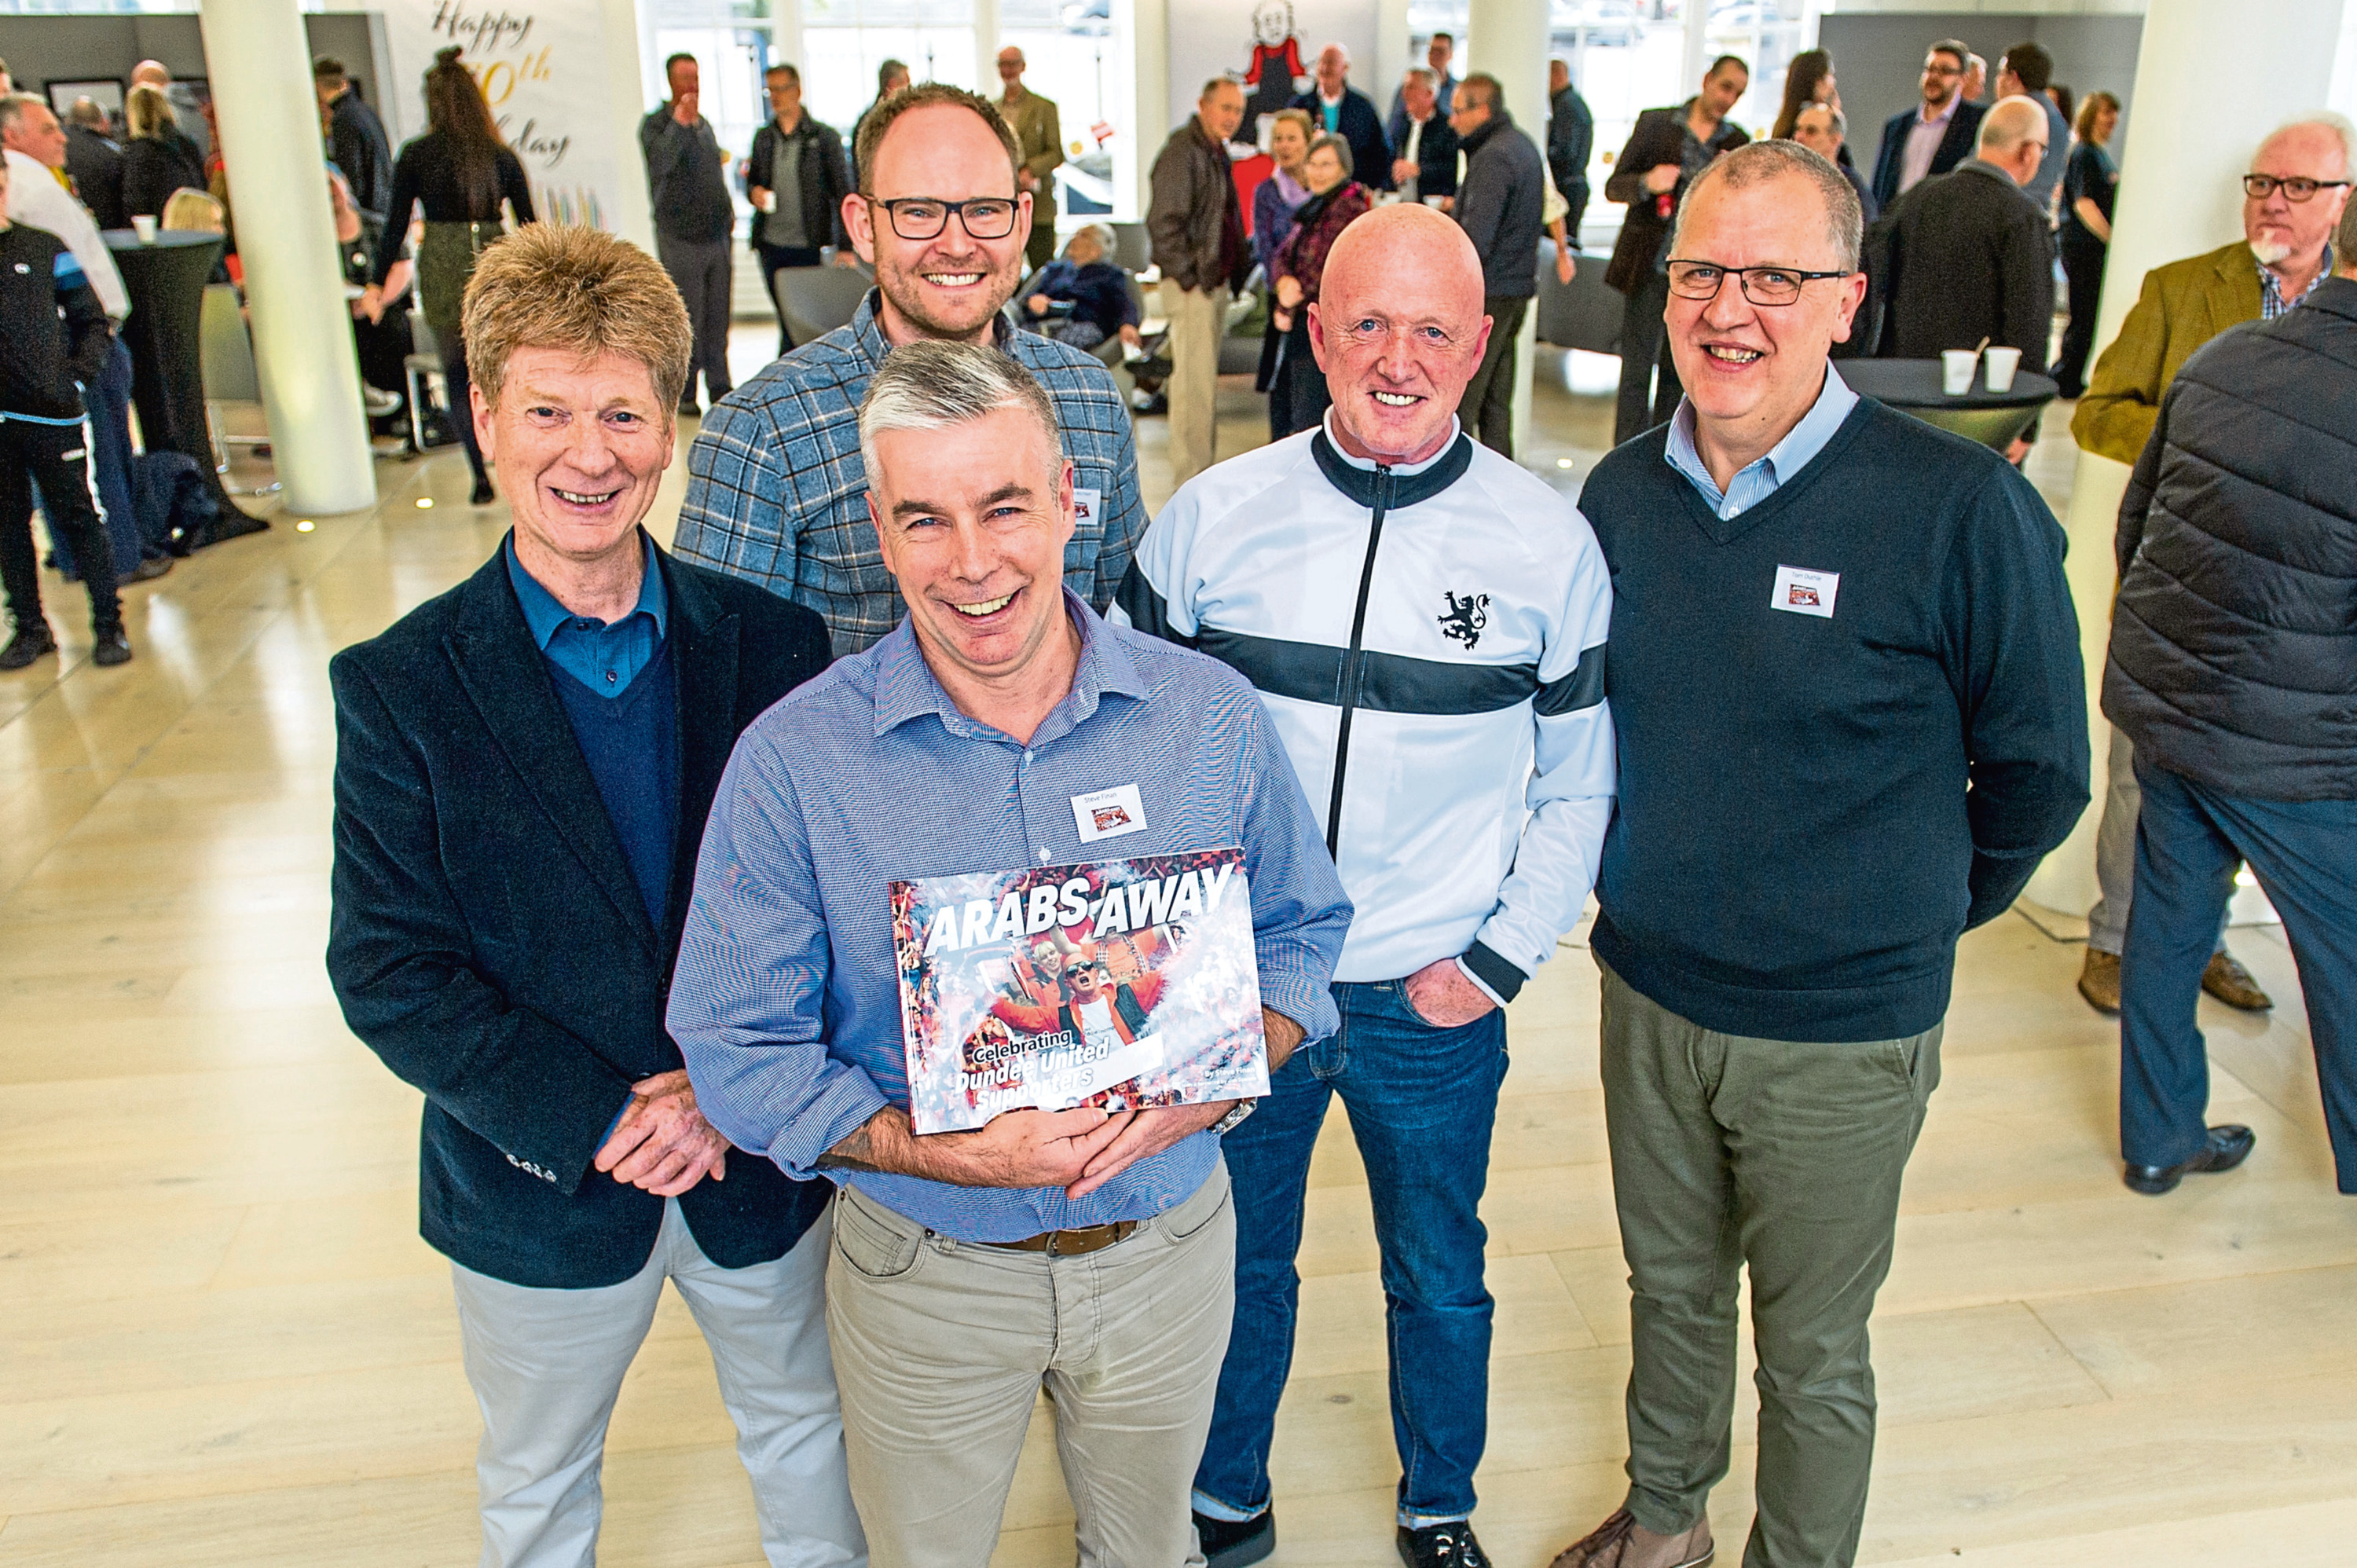 From left: Jim Spence, Gary Aitchison, Steve Finan, Billy Hoolachan, who appears on the cover, and Tom Duthie at the launch.